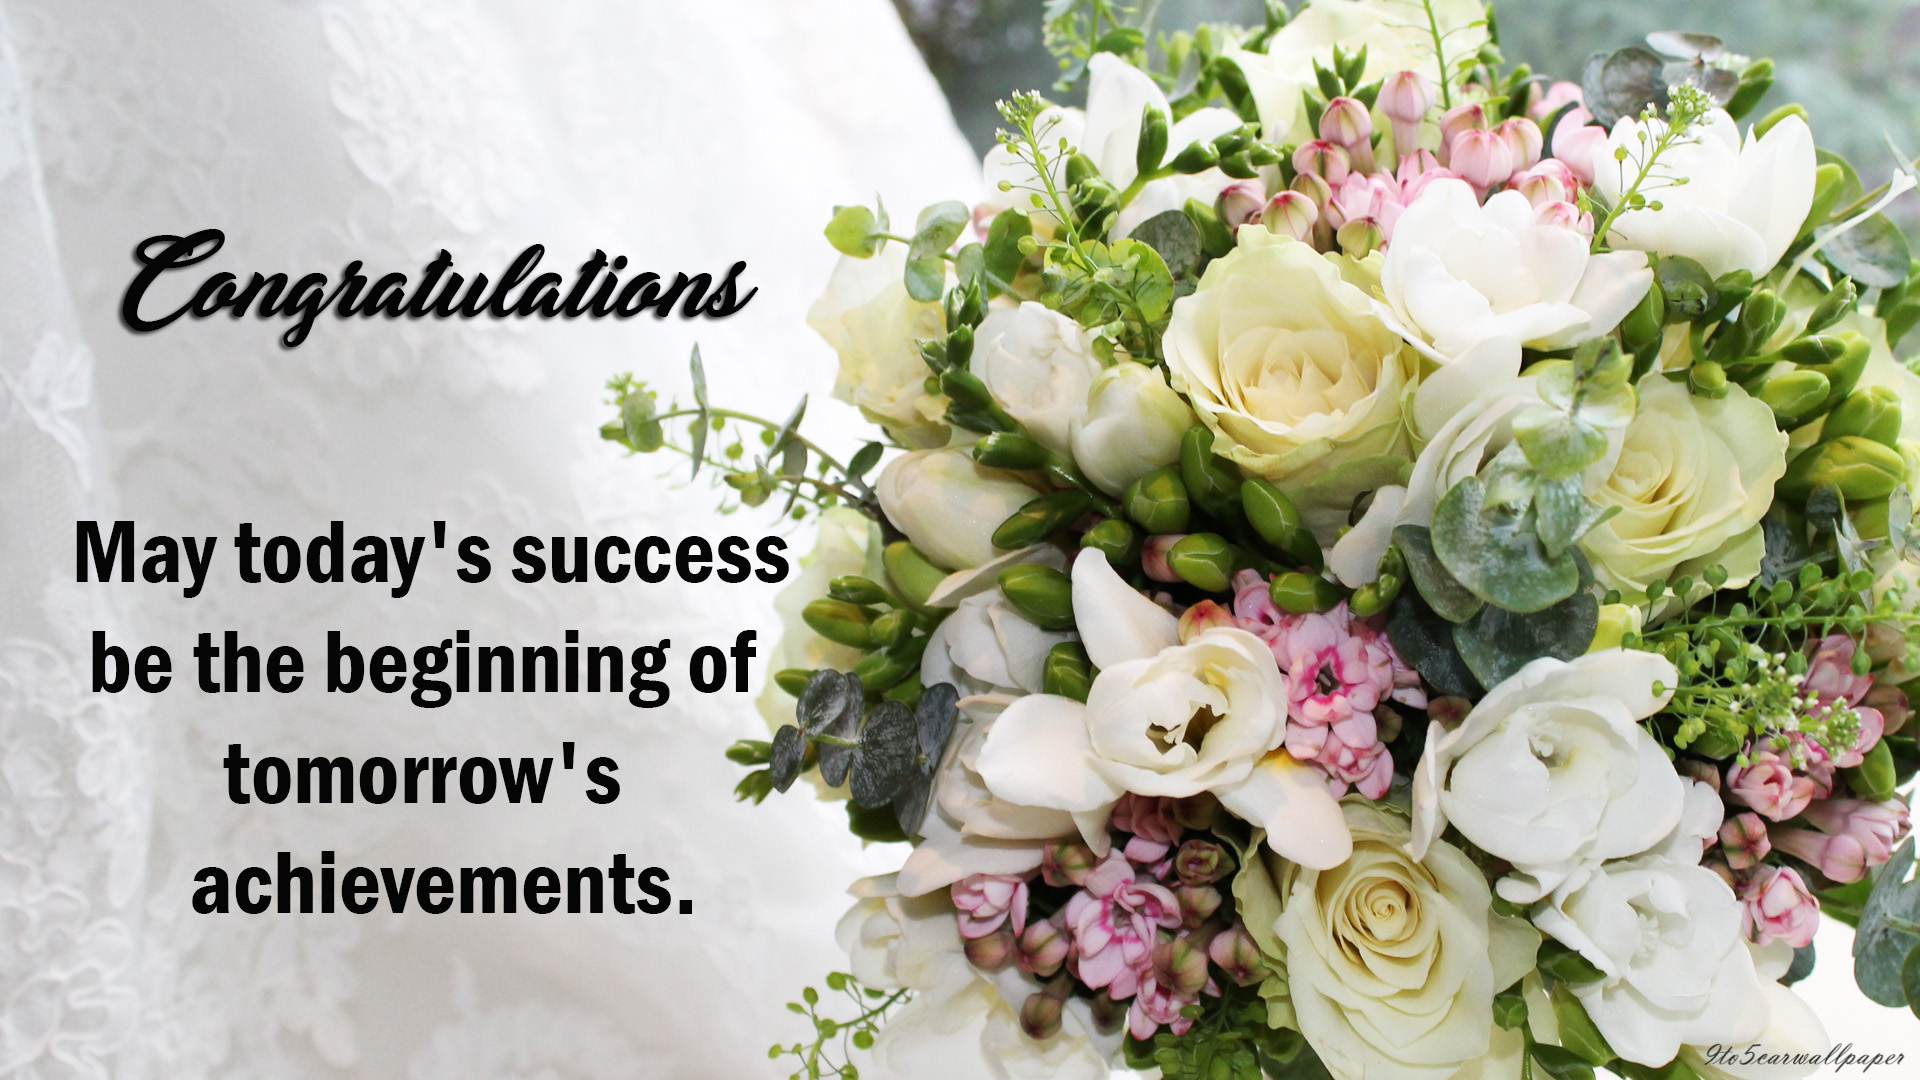 Lovely Congratulations Images & Wishes 2018 - My Site